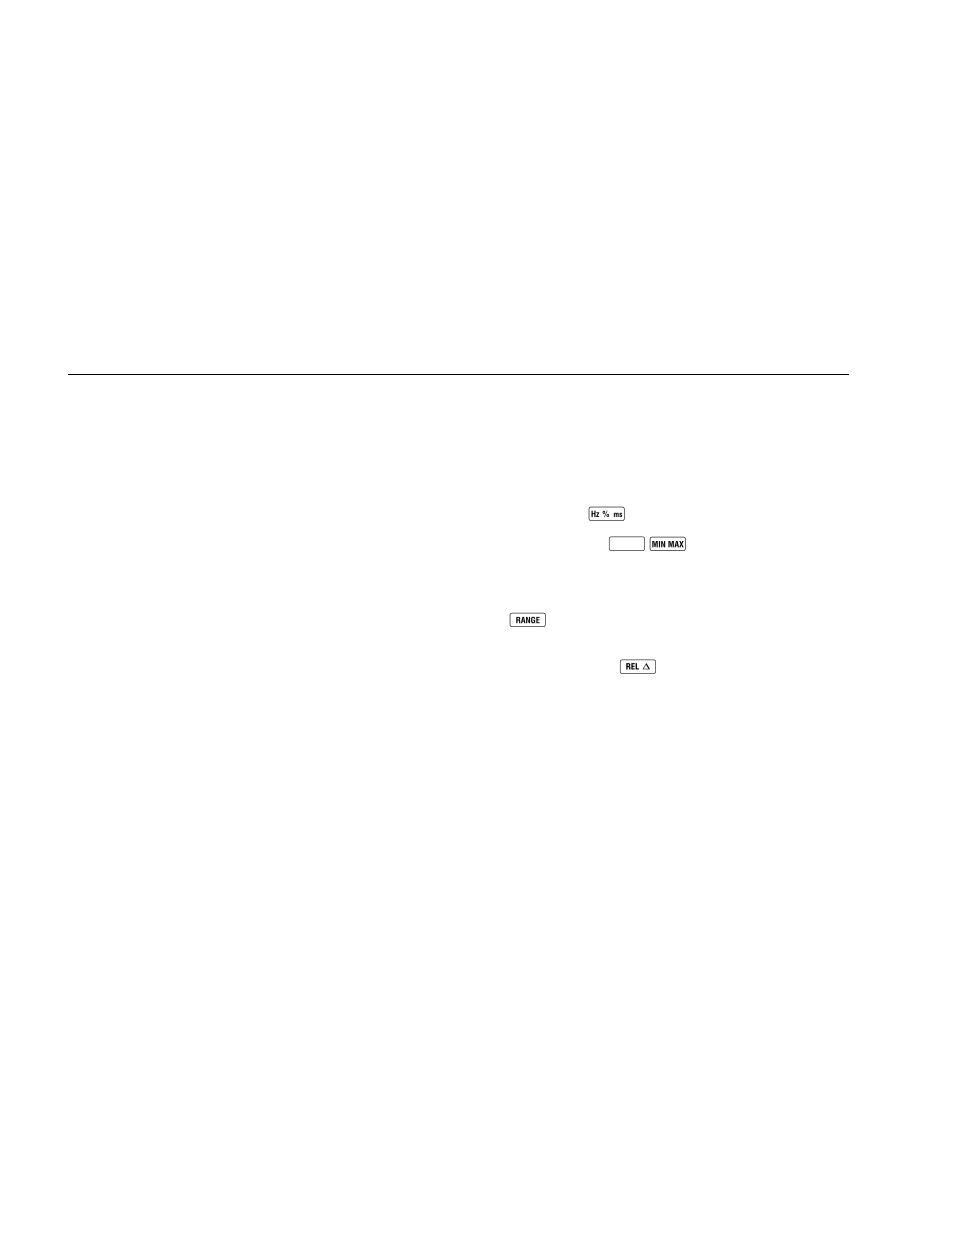 Measuring Capacitance Fluke 189 User Manual Page 48 96 Capacitor Charging And Discharging Circuit